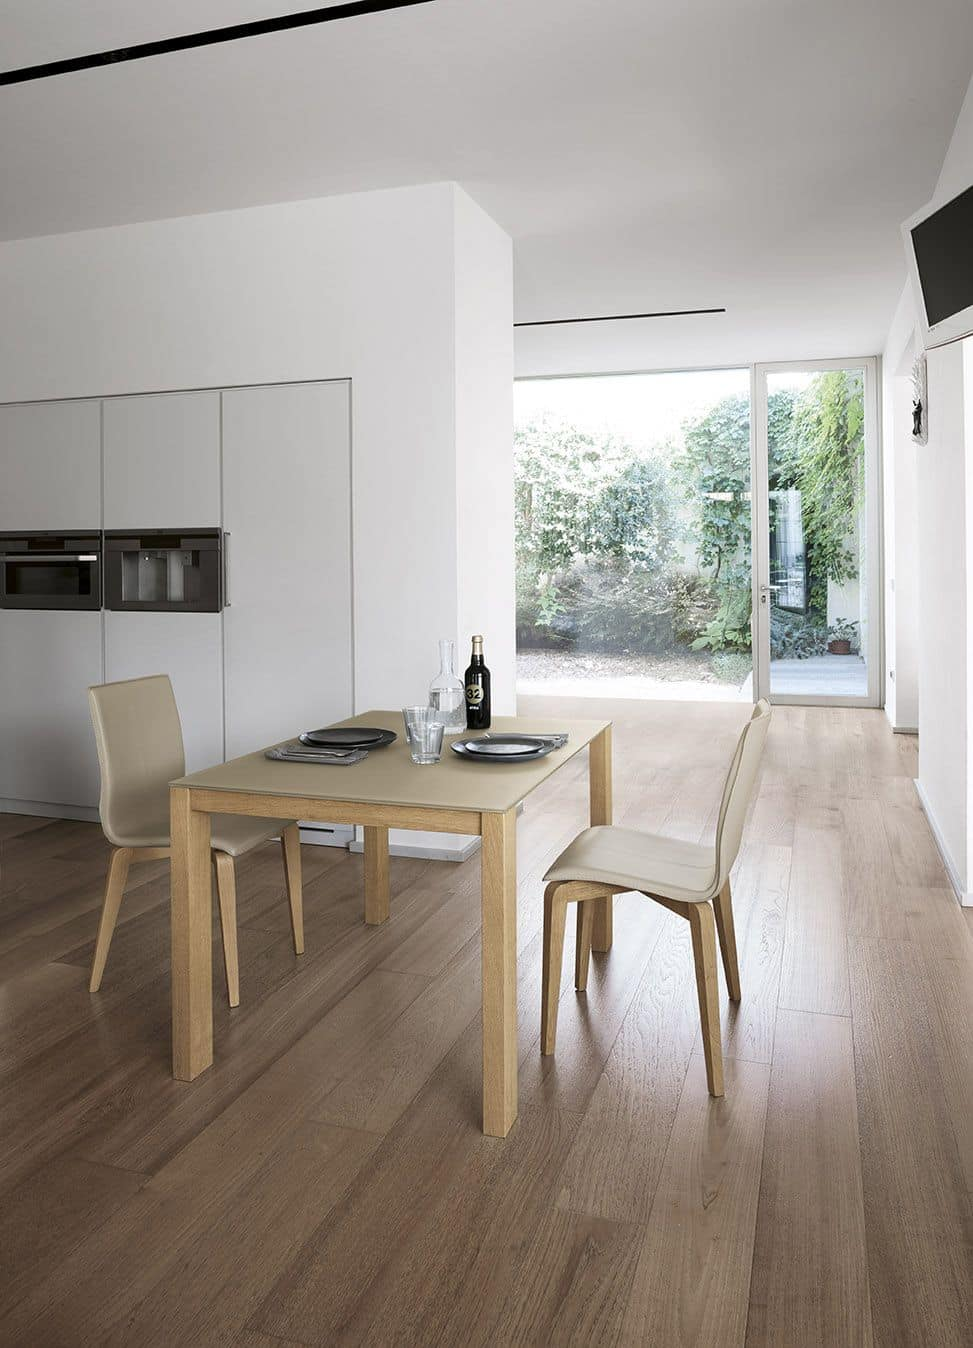 SOLE 110 WOOD TA181, Aluminum extendable table with legs in solid wood, tempered glass top